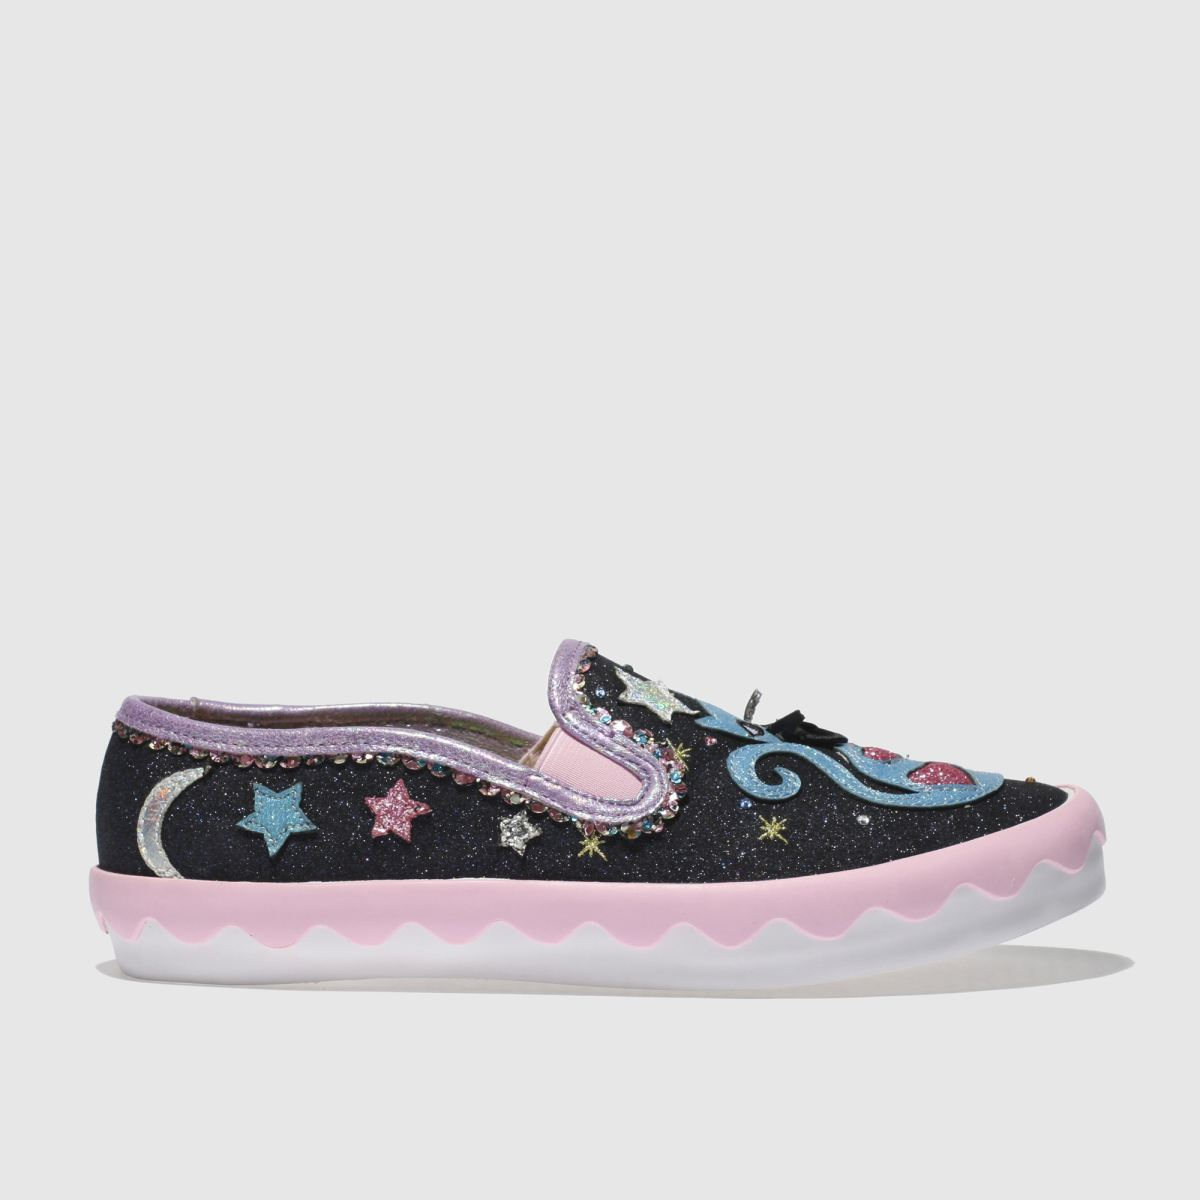 Irregular Choice Irregular Choice Black & Pink Pretty Kitty Flat Shoes